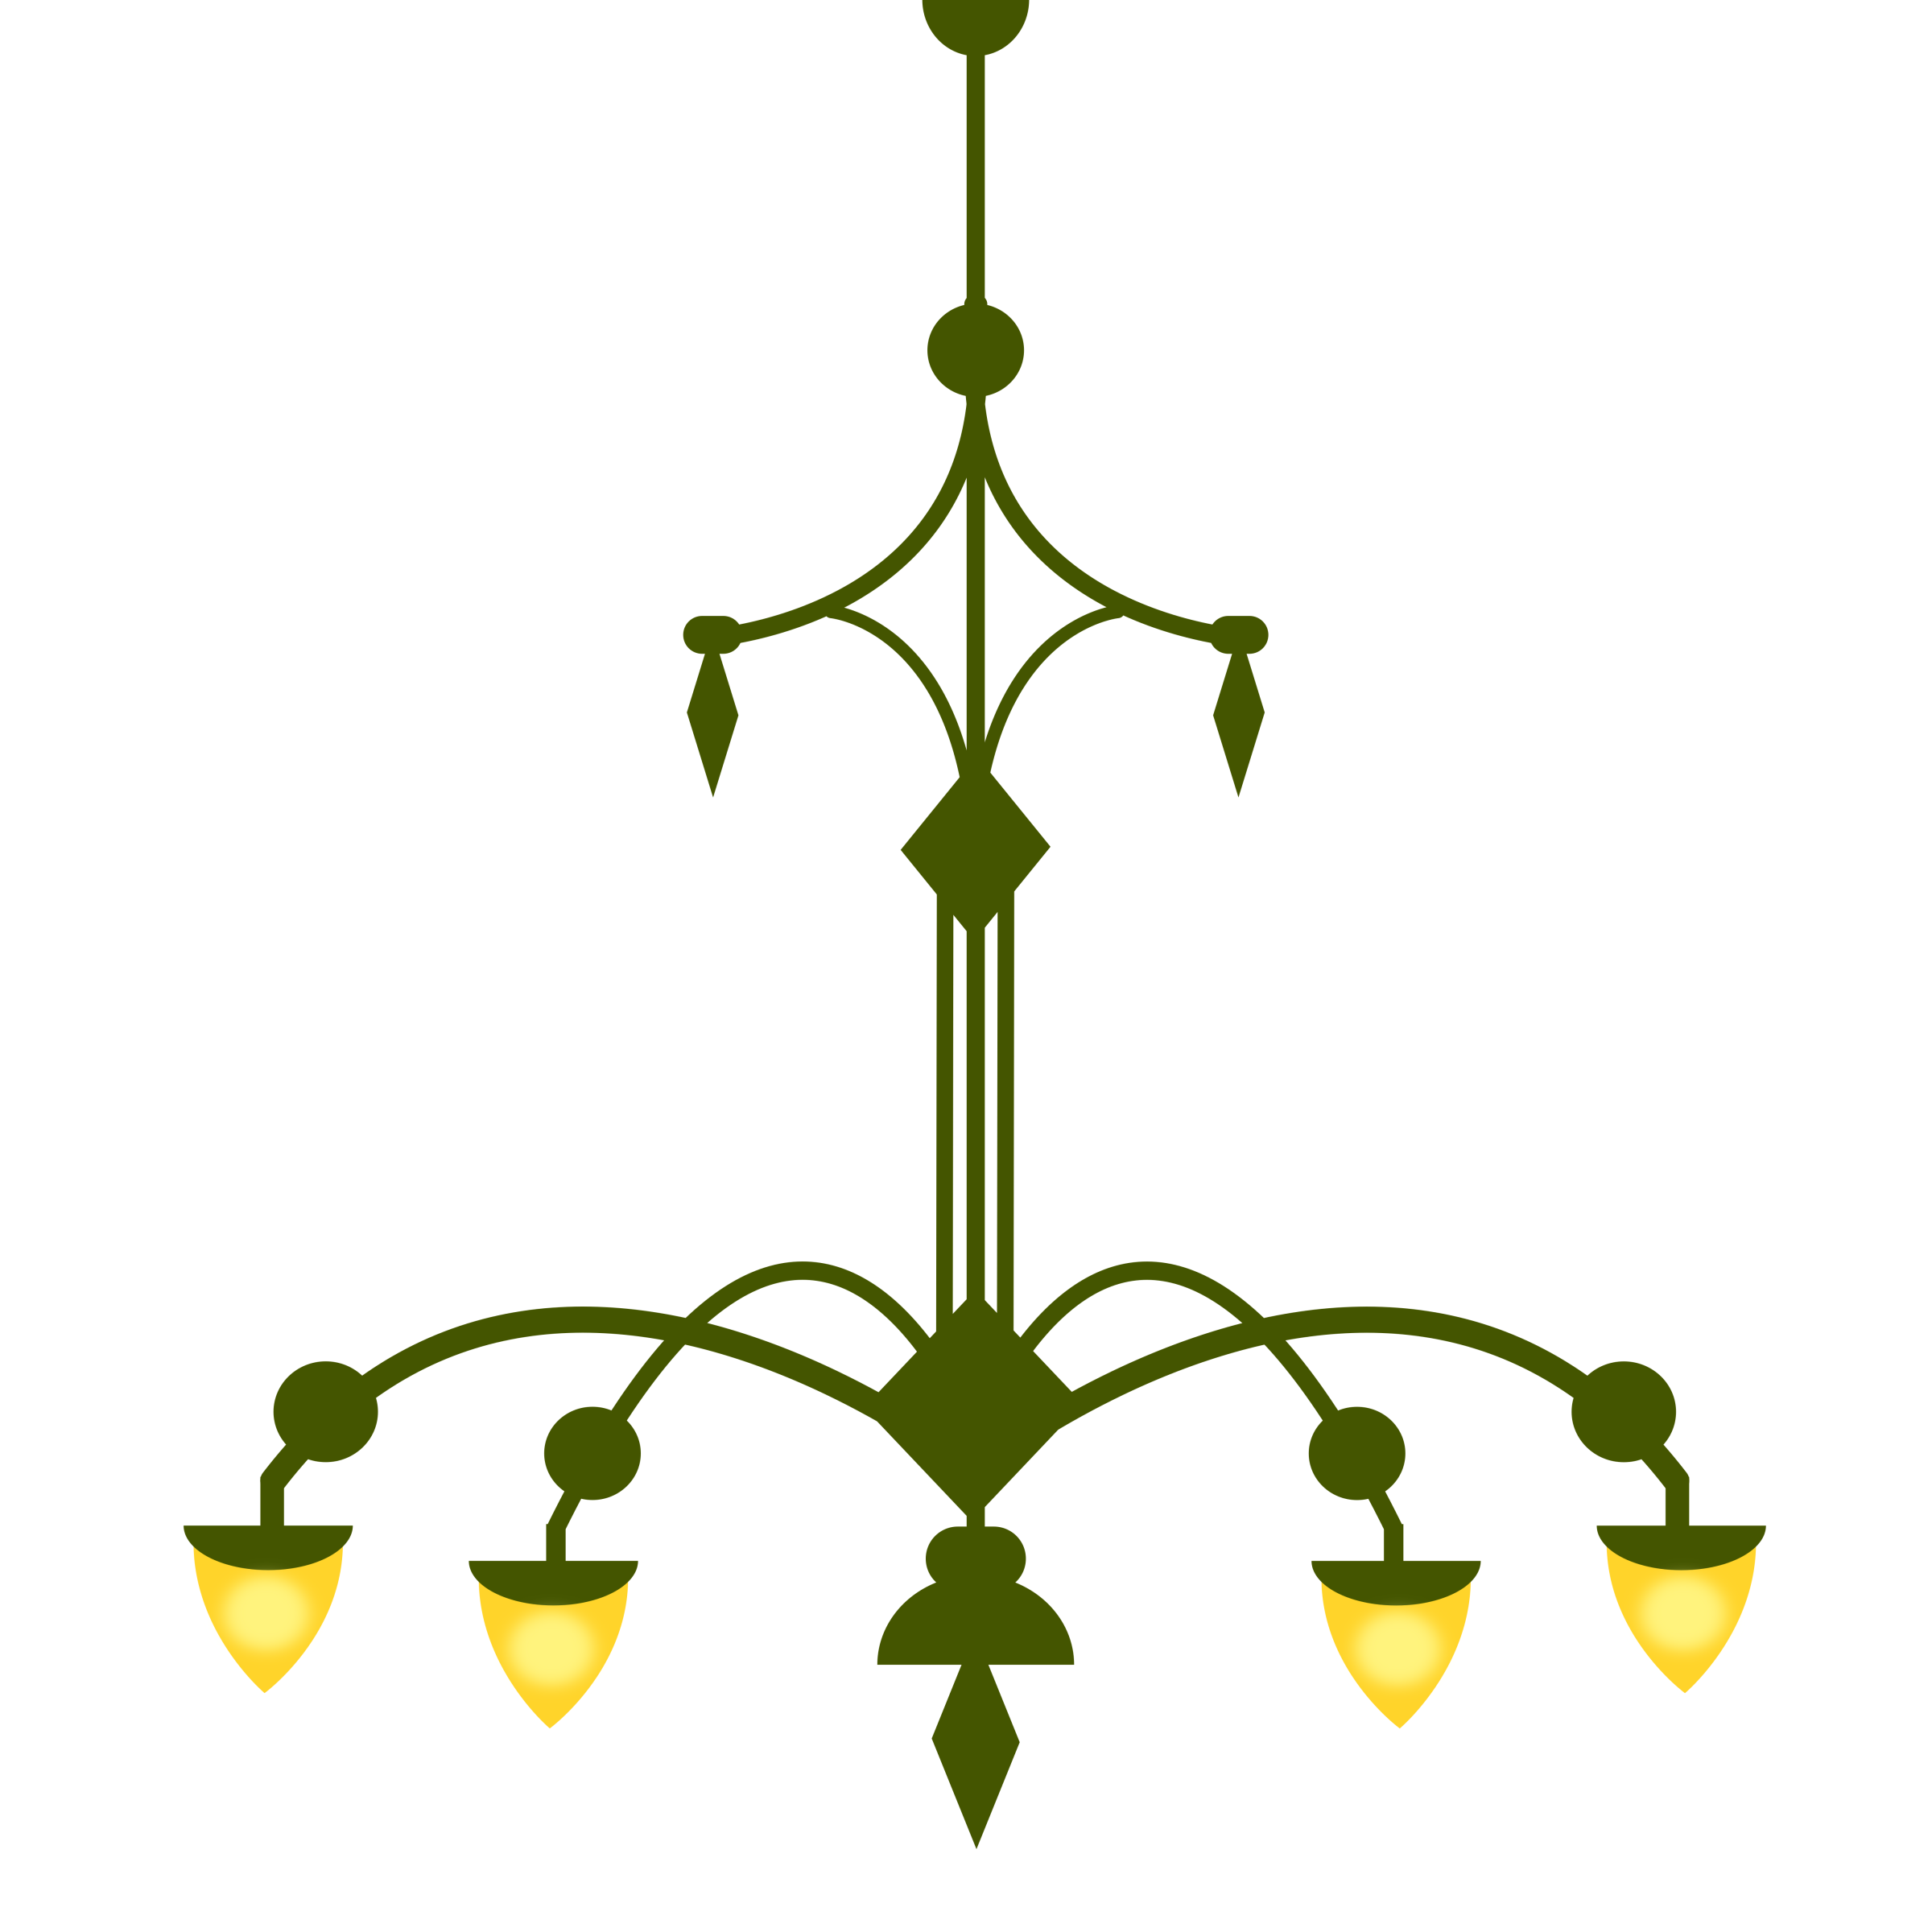 Clipart ornate chandelier with 4 lamps version 1 ornate chandelier with 4 lamps version 1 arubaitofo Image collections